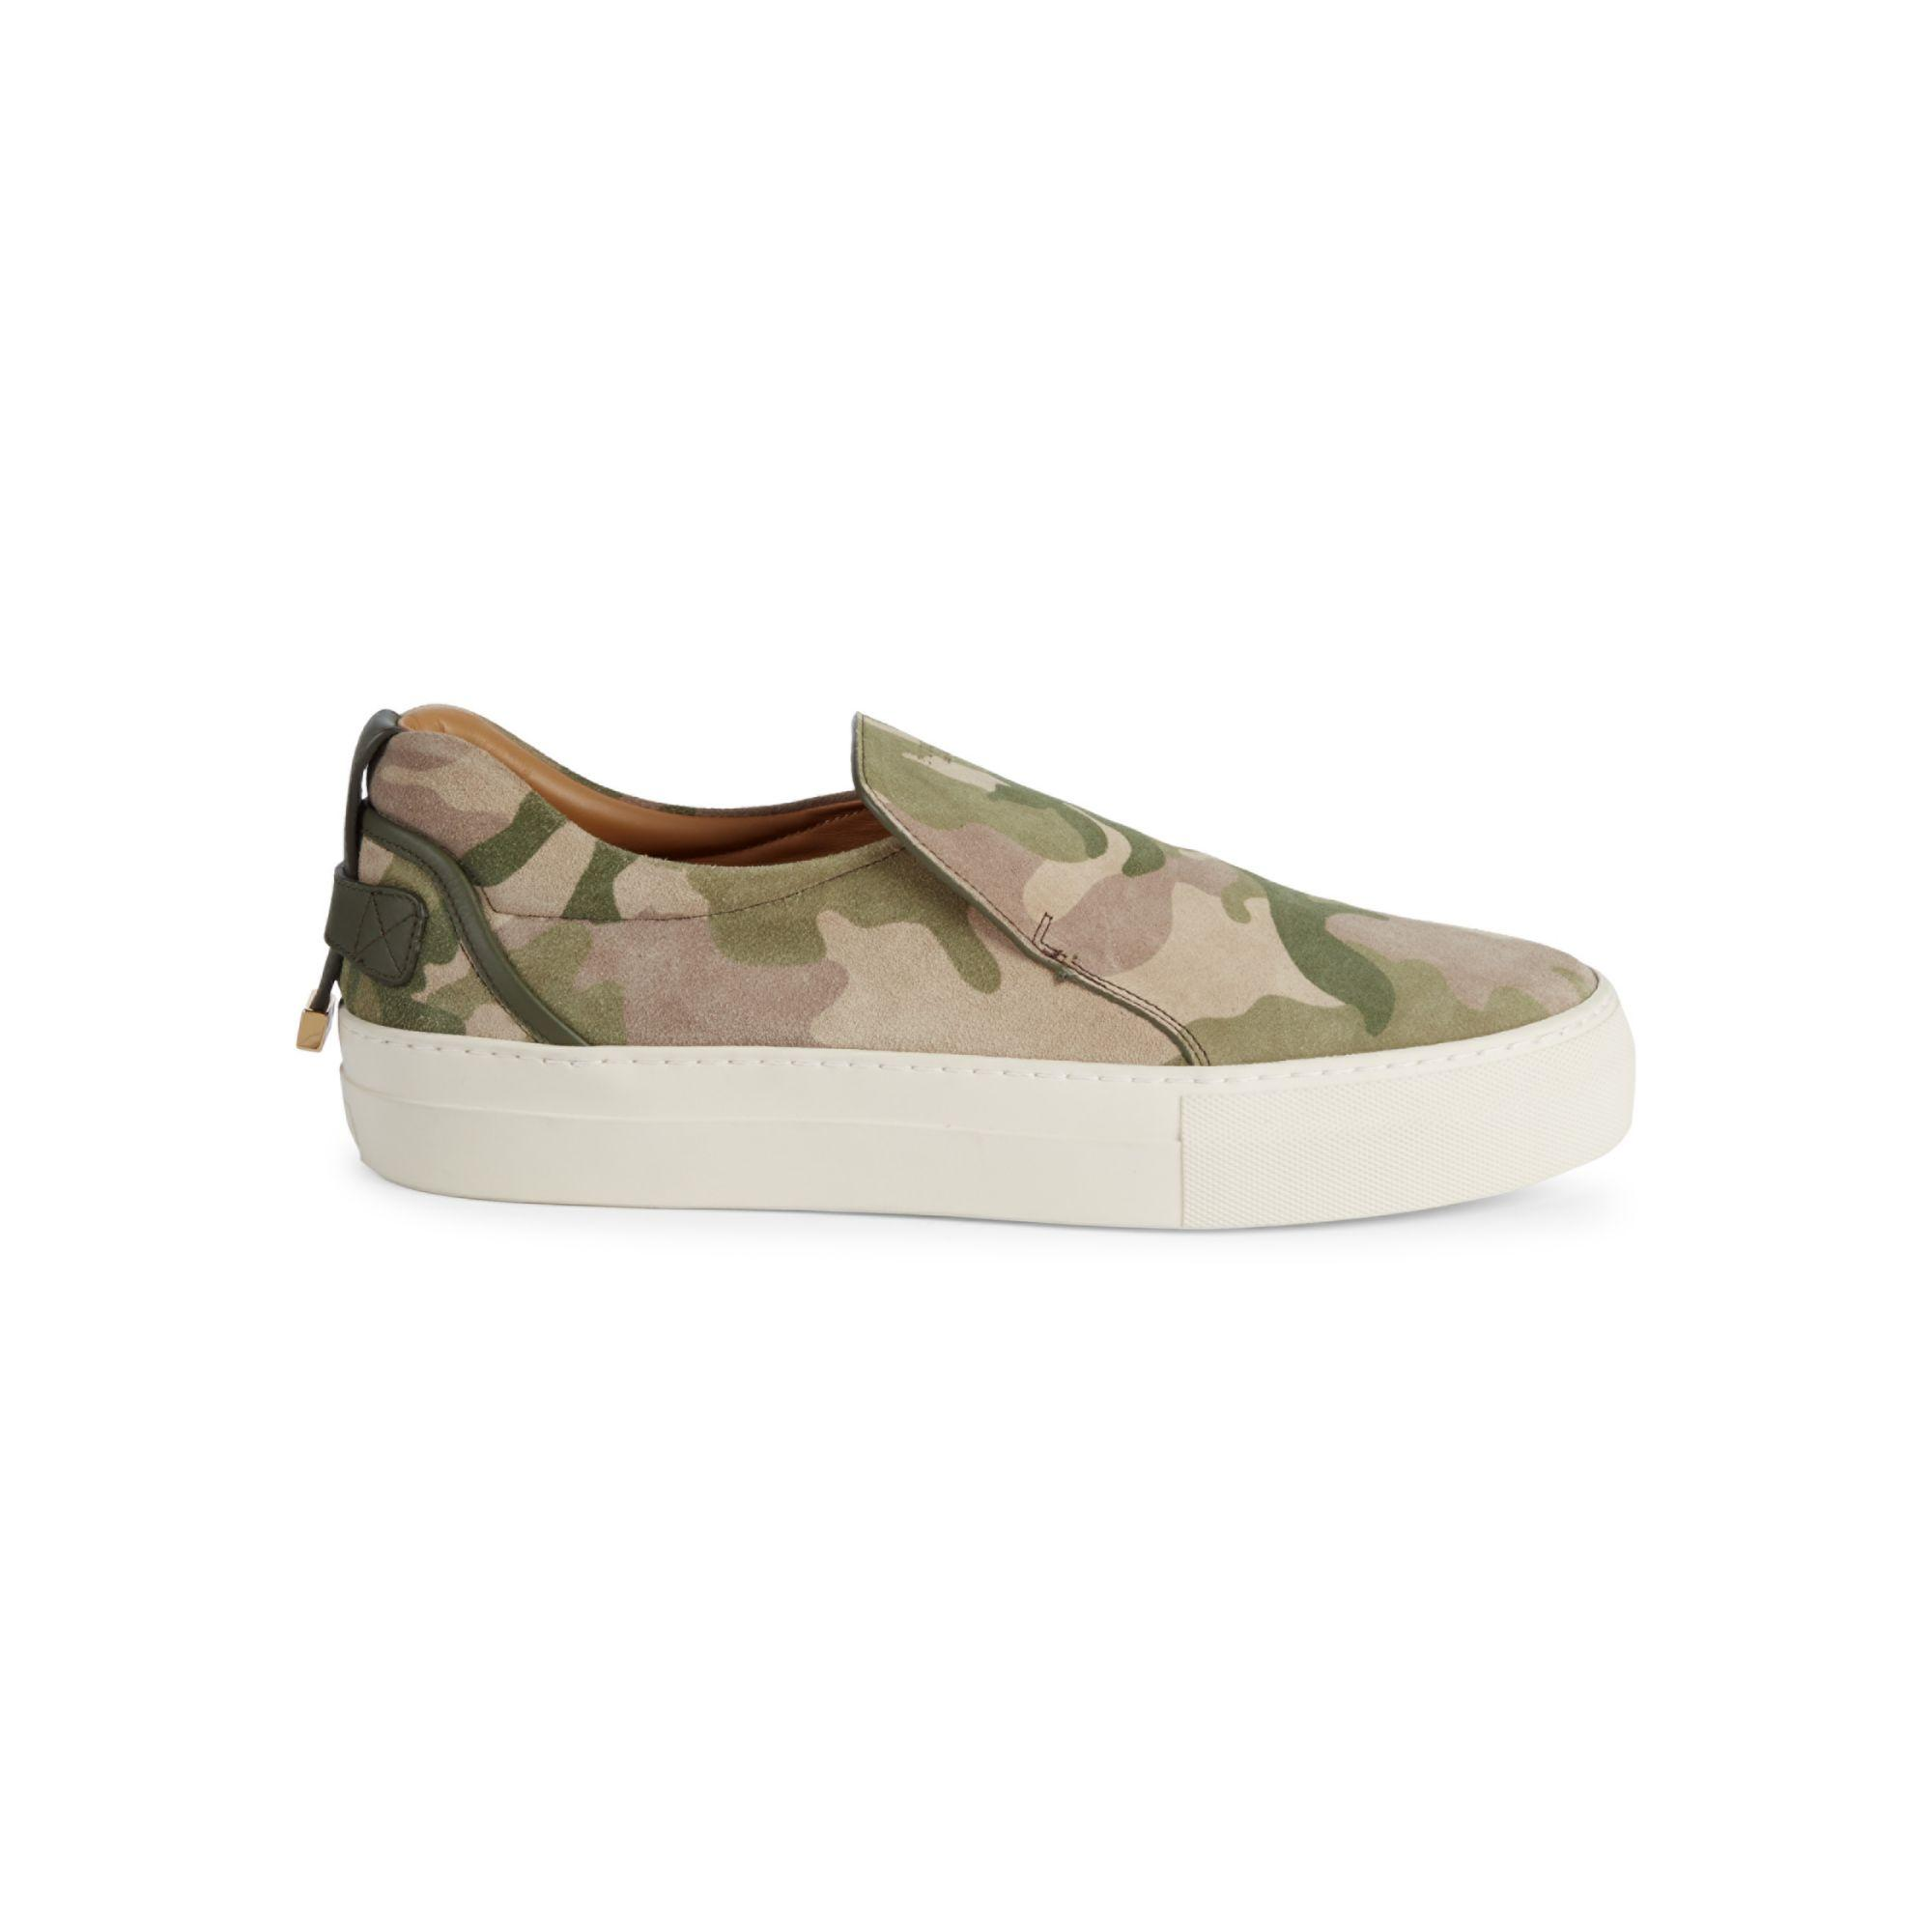 Buscemi Camouflage Suede Slip-on